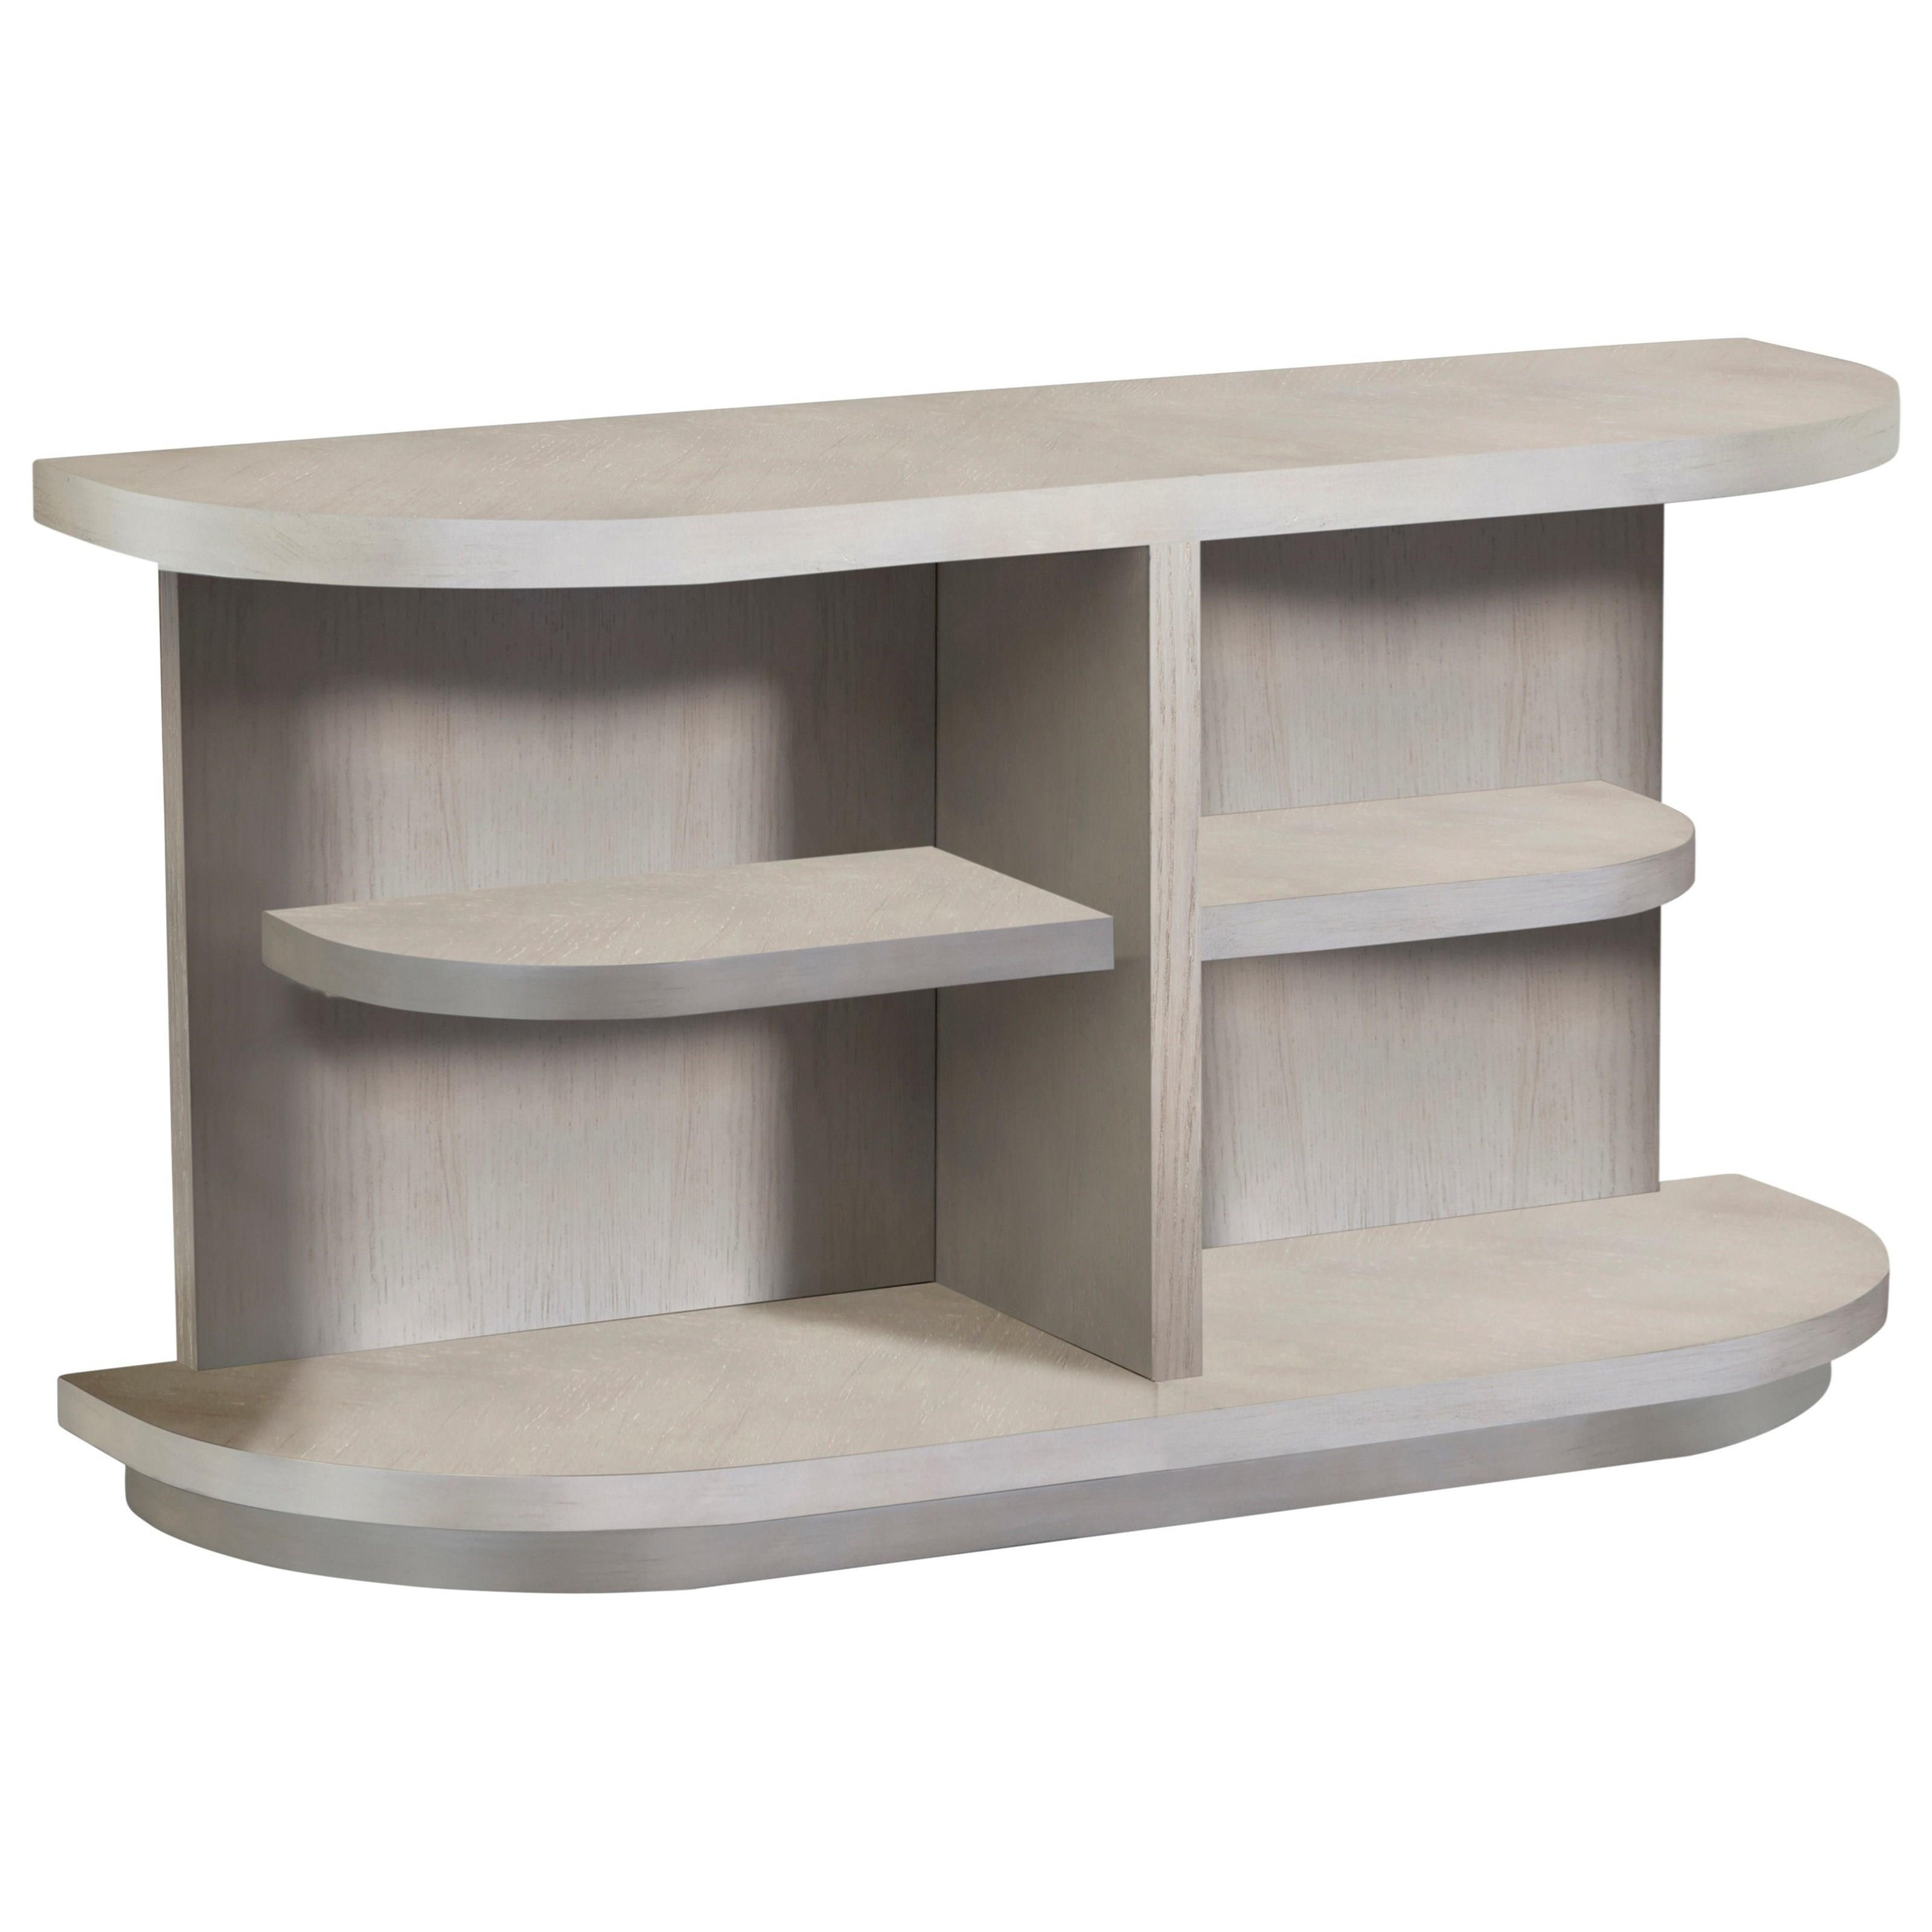 Augustine Sofa/Console Table by Progressive Furniture at Simply Home by Lindy's